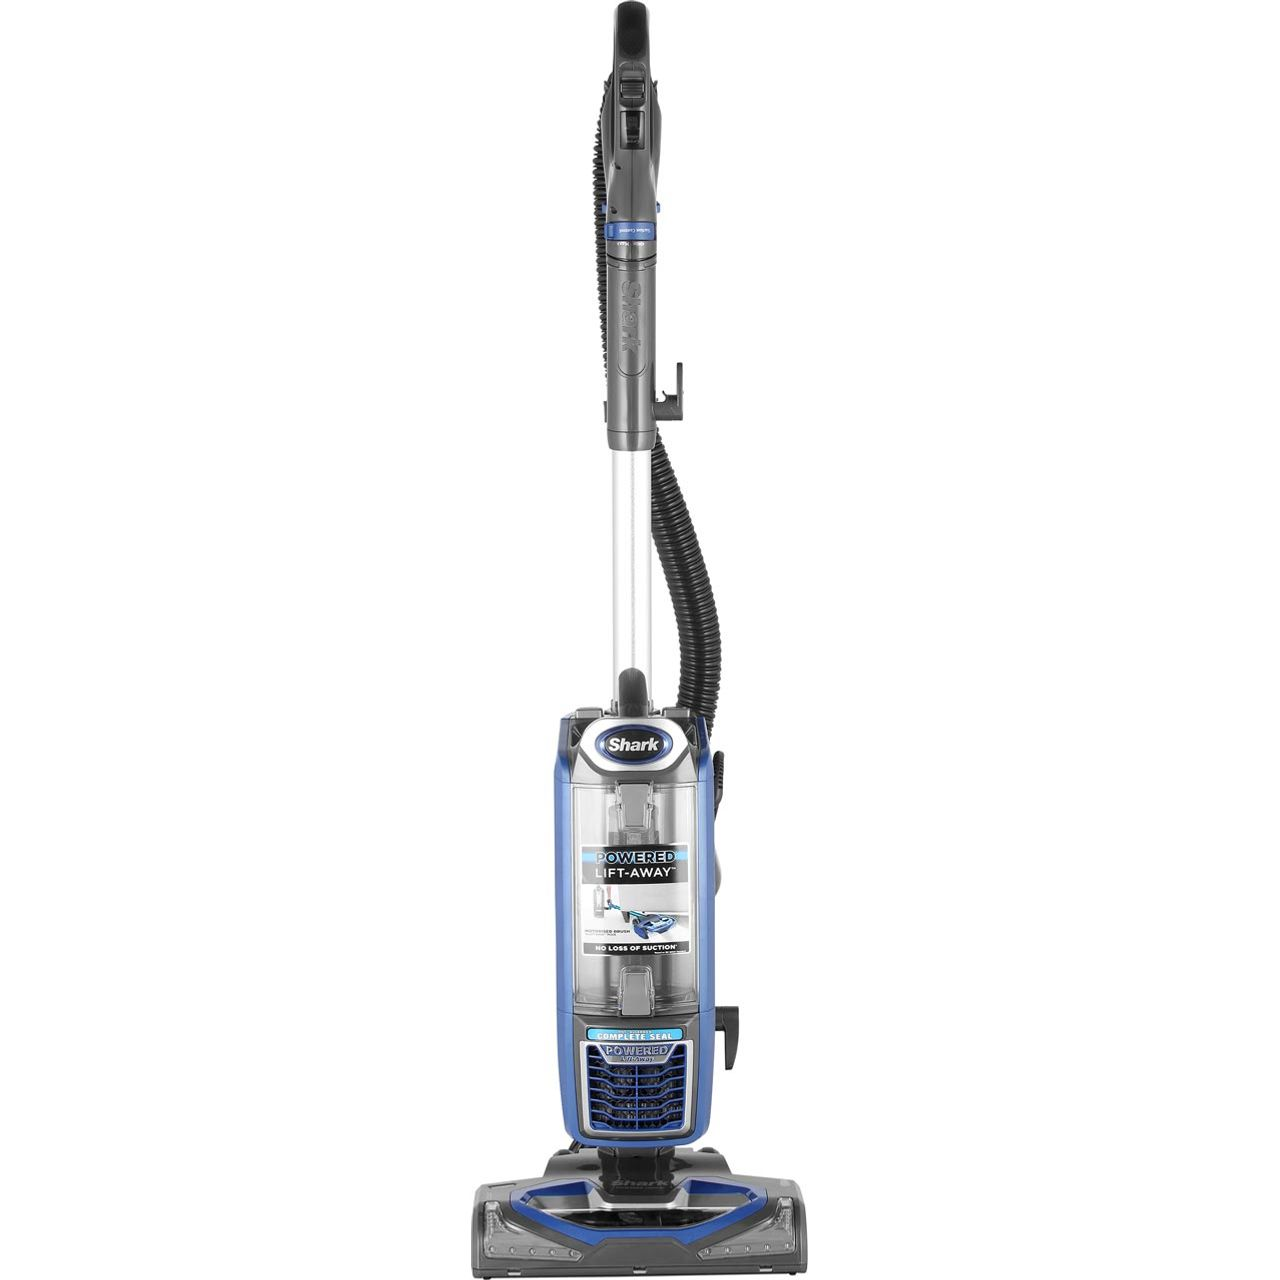 Nv681uk Bl Shark Bagless Vacuum Cleaner This Is Gooda Vaccuum Wiper Switch Cable Operated There No